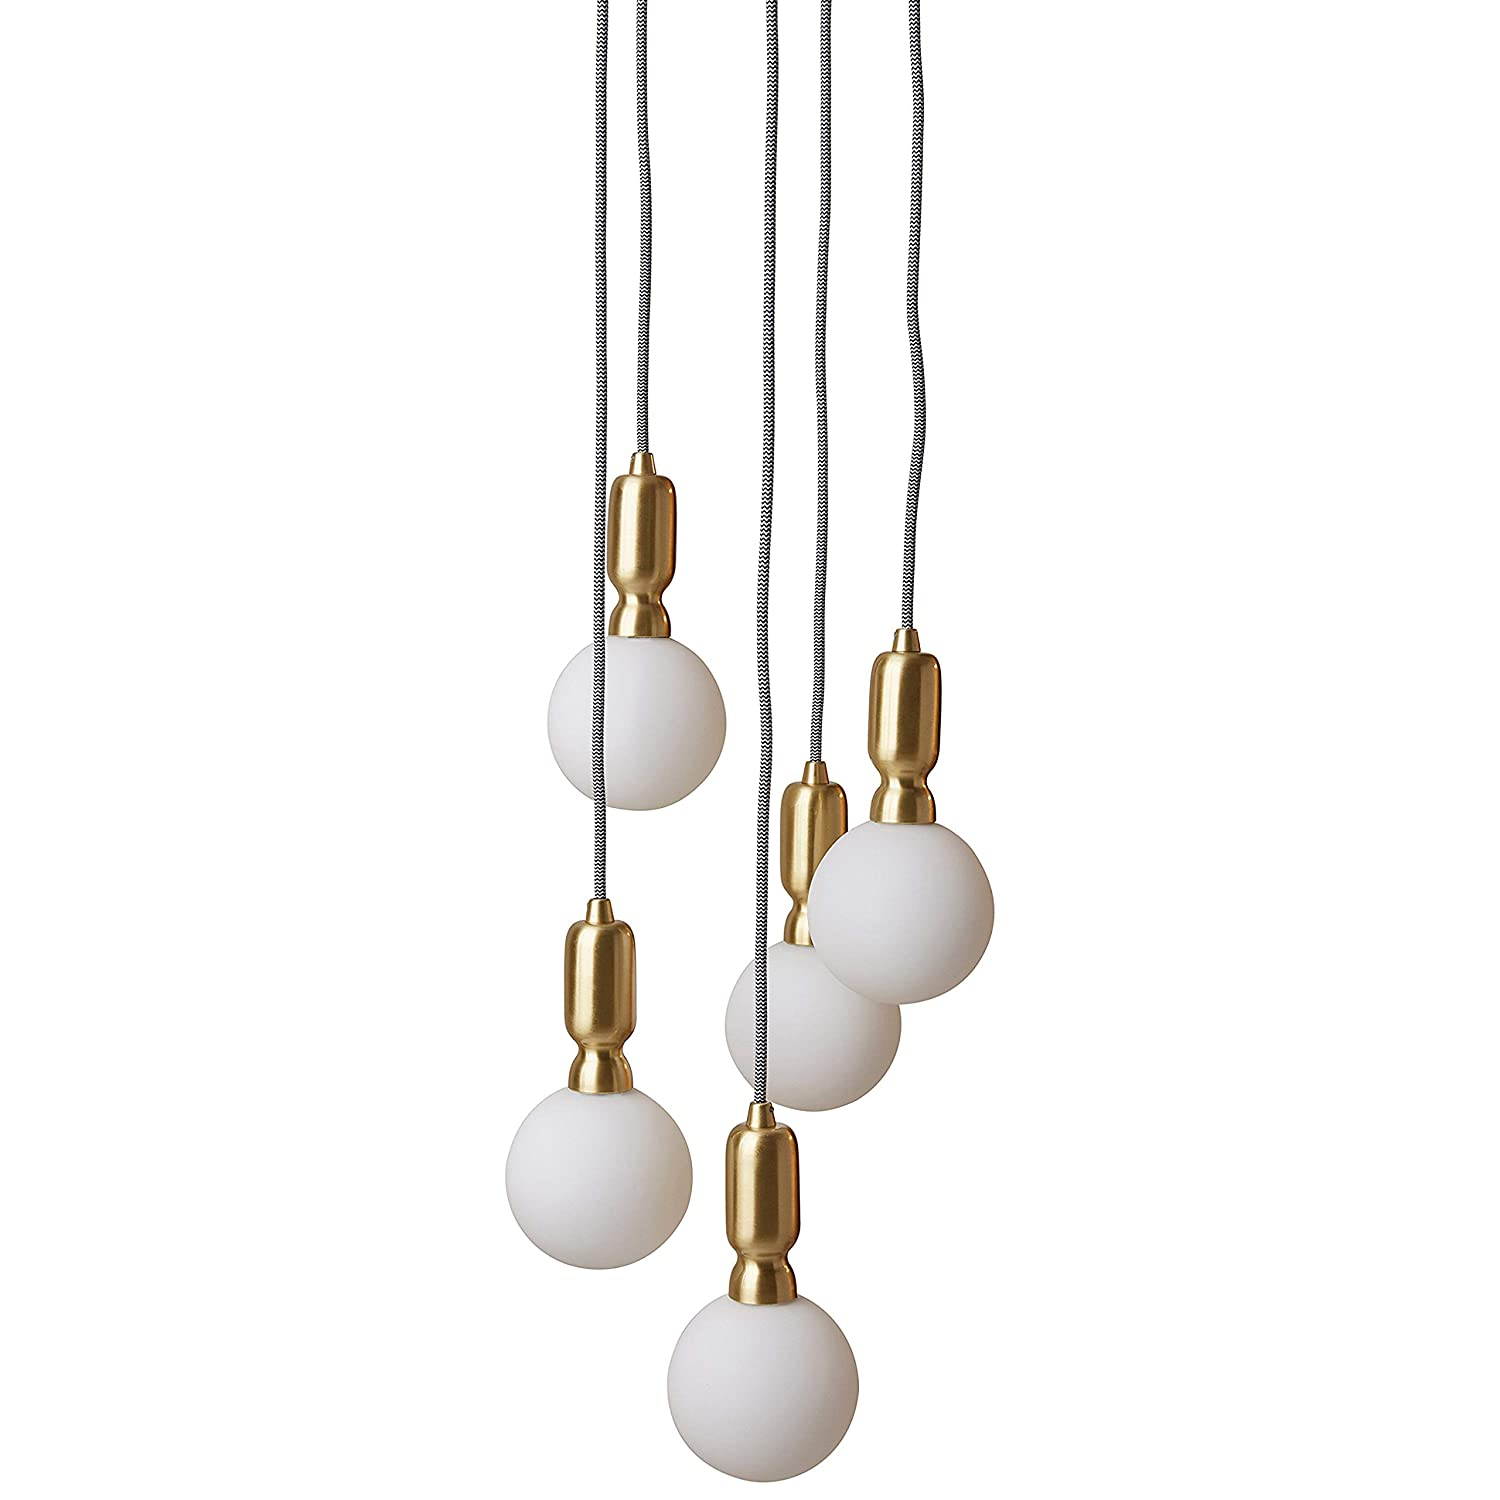 Pendant Chandelier Rivet Diana Modern 5-Globe Pendant Chandelier With  Bulbs, 65 H, gold